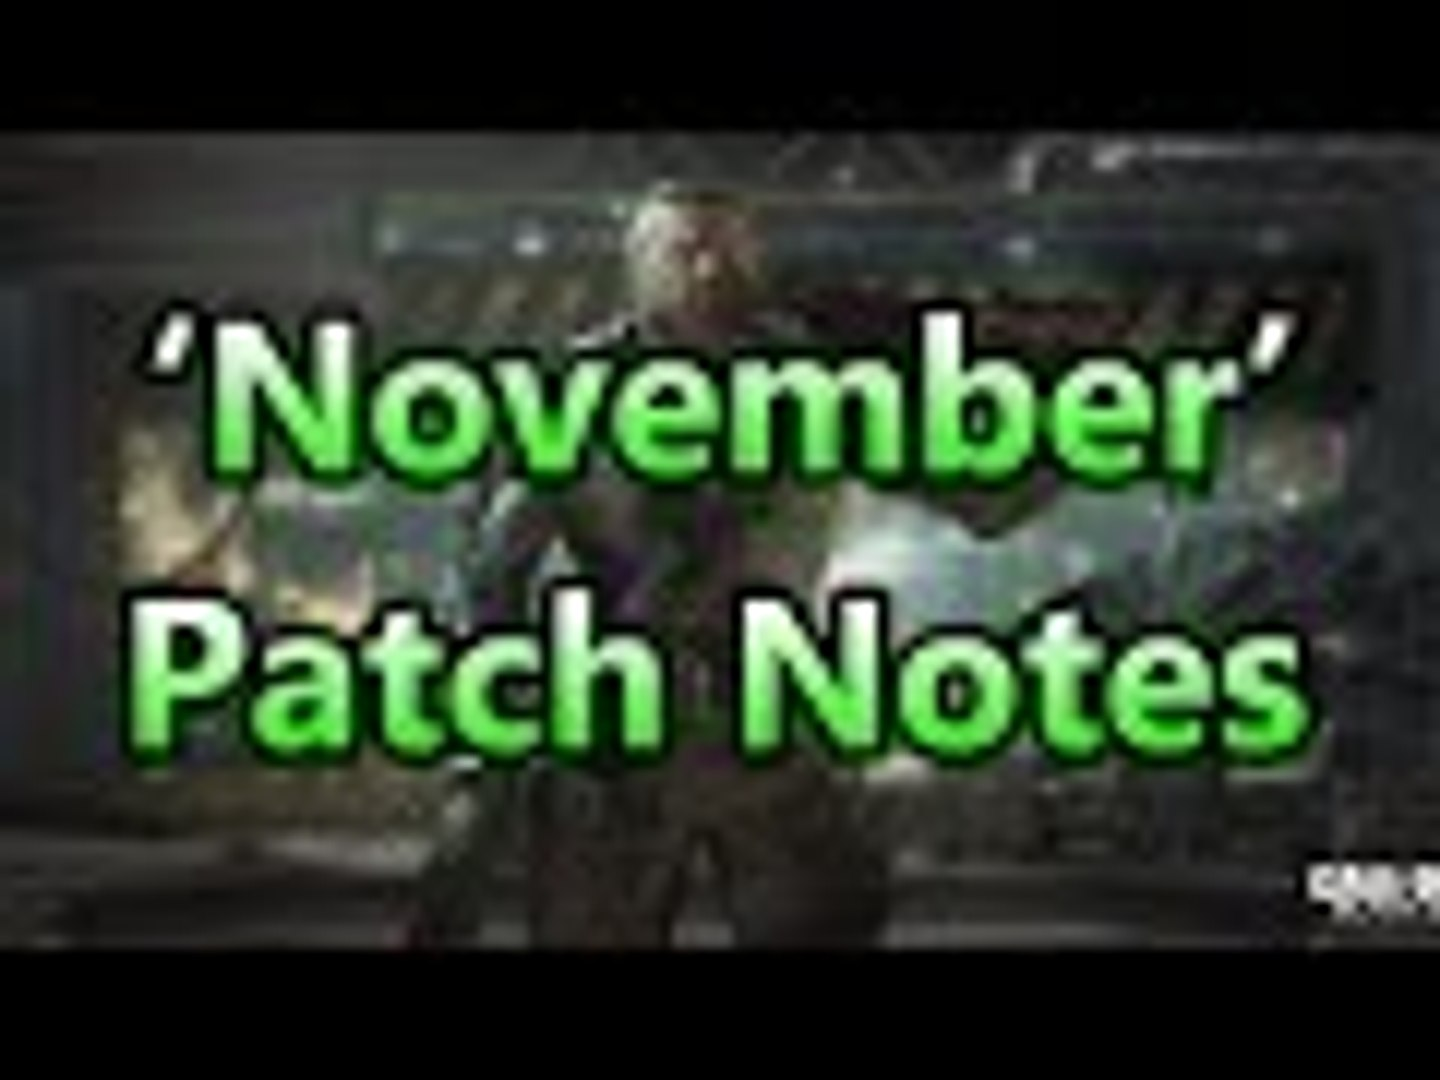 'November' - Black Ops 3 Patch Notes